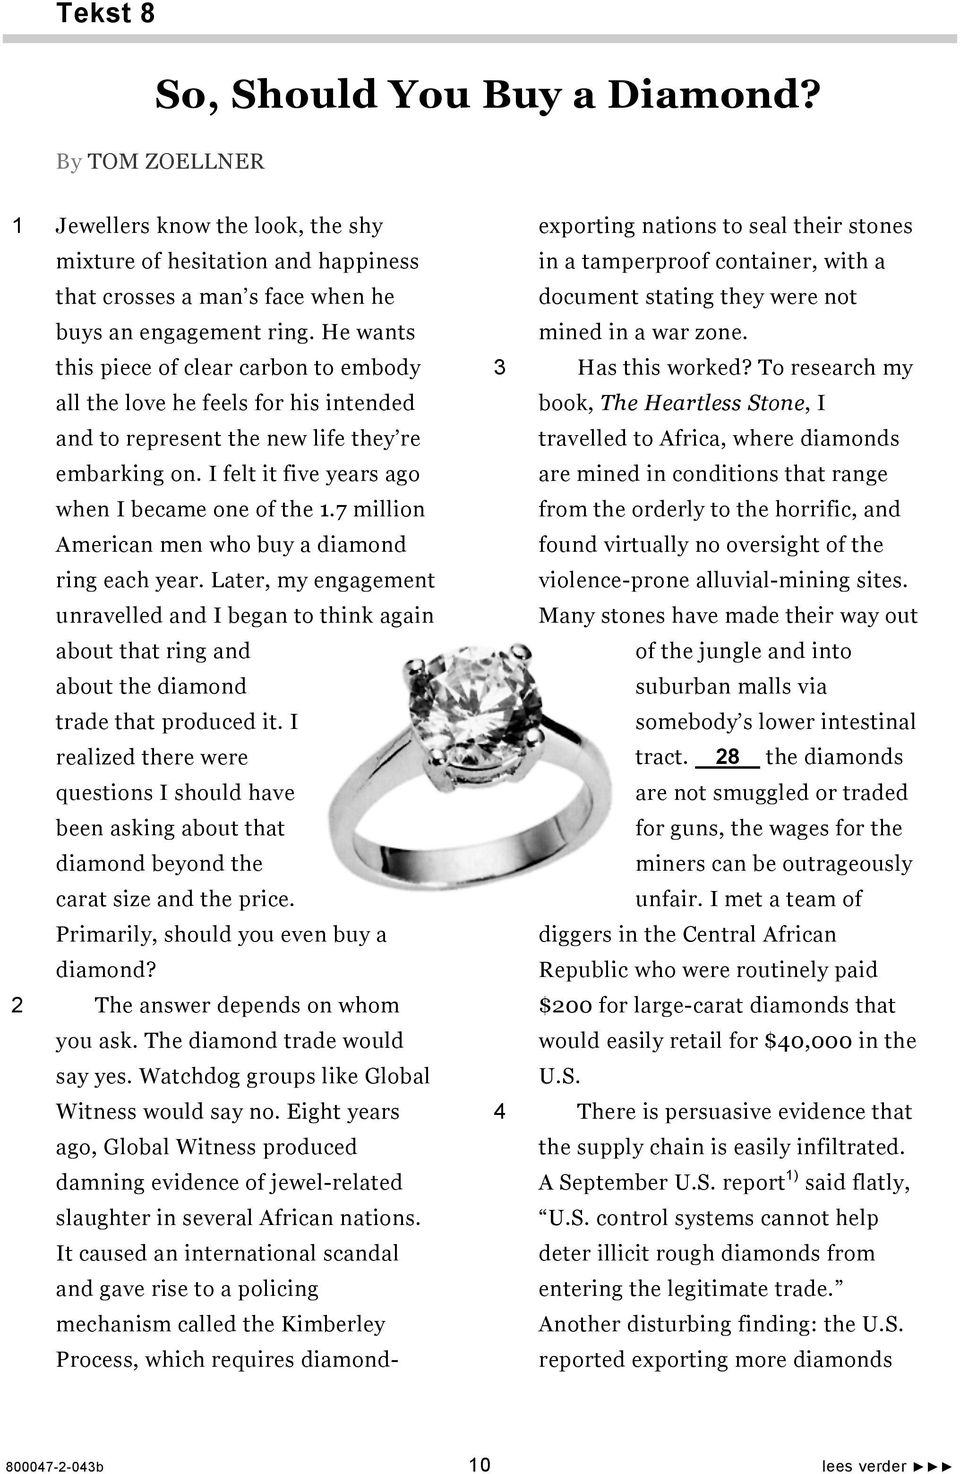 7 million American men who buy a diamond ring each year. Later, my engagement unravelled and I began to think again about that ring and about the diamond trade that produced it.